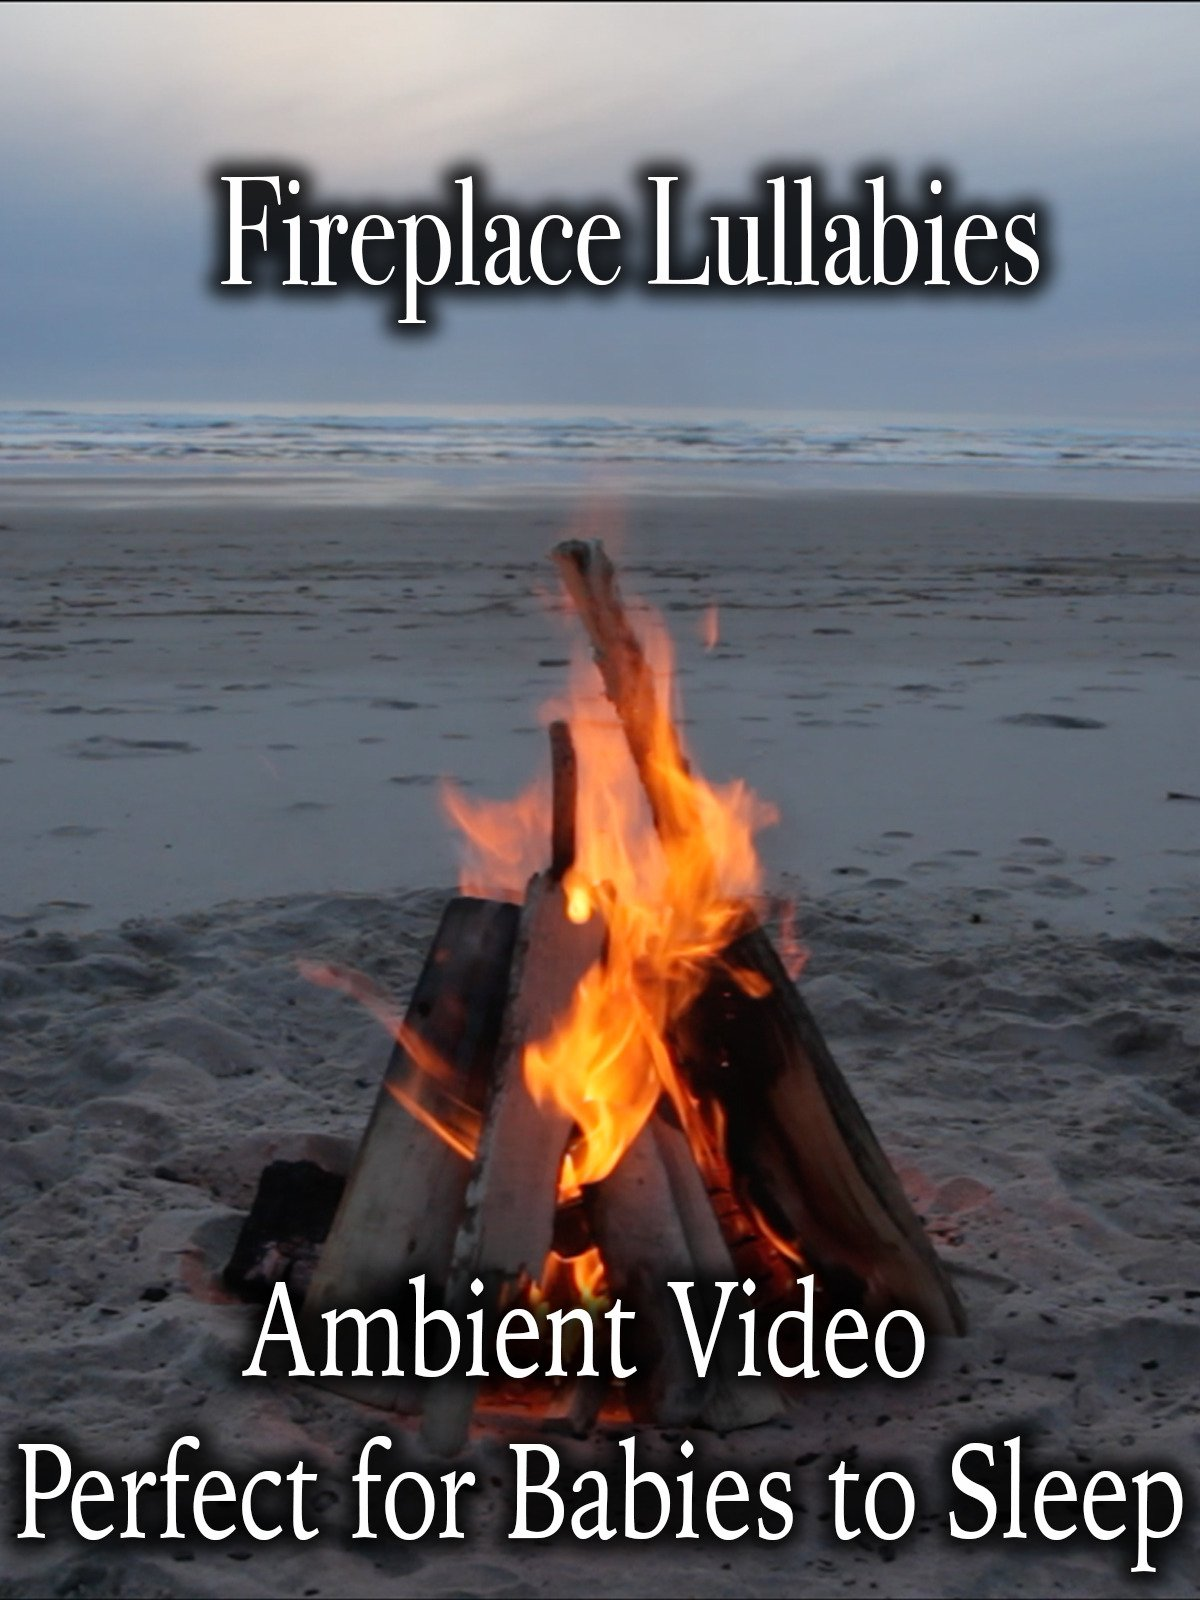 Fireplace Lullabies Ambient Video Perfect for Babies to Sleep